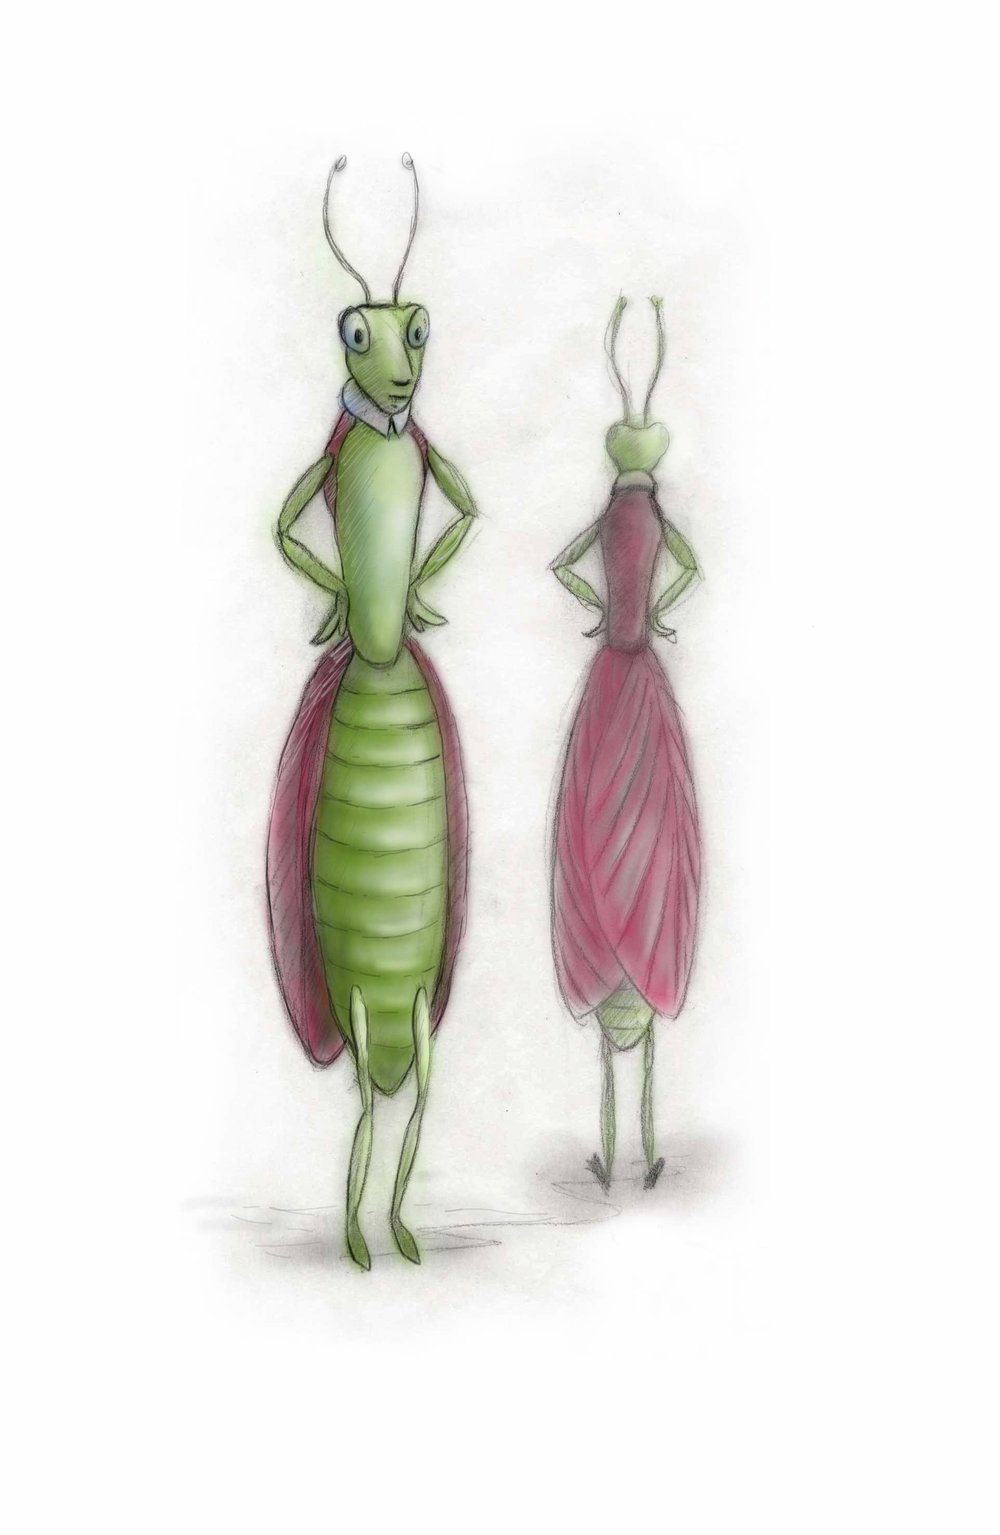 fashion bug praying mantis.jpeg